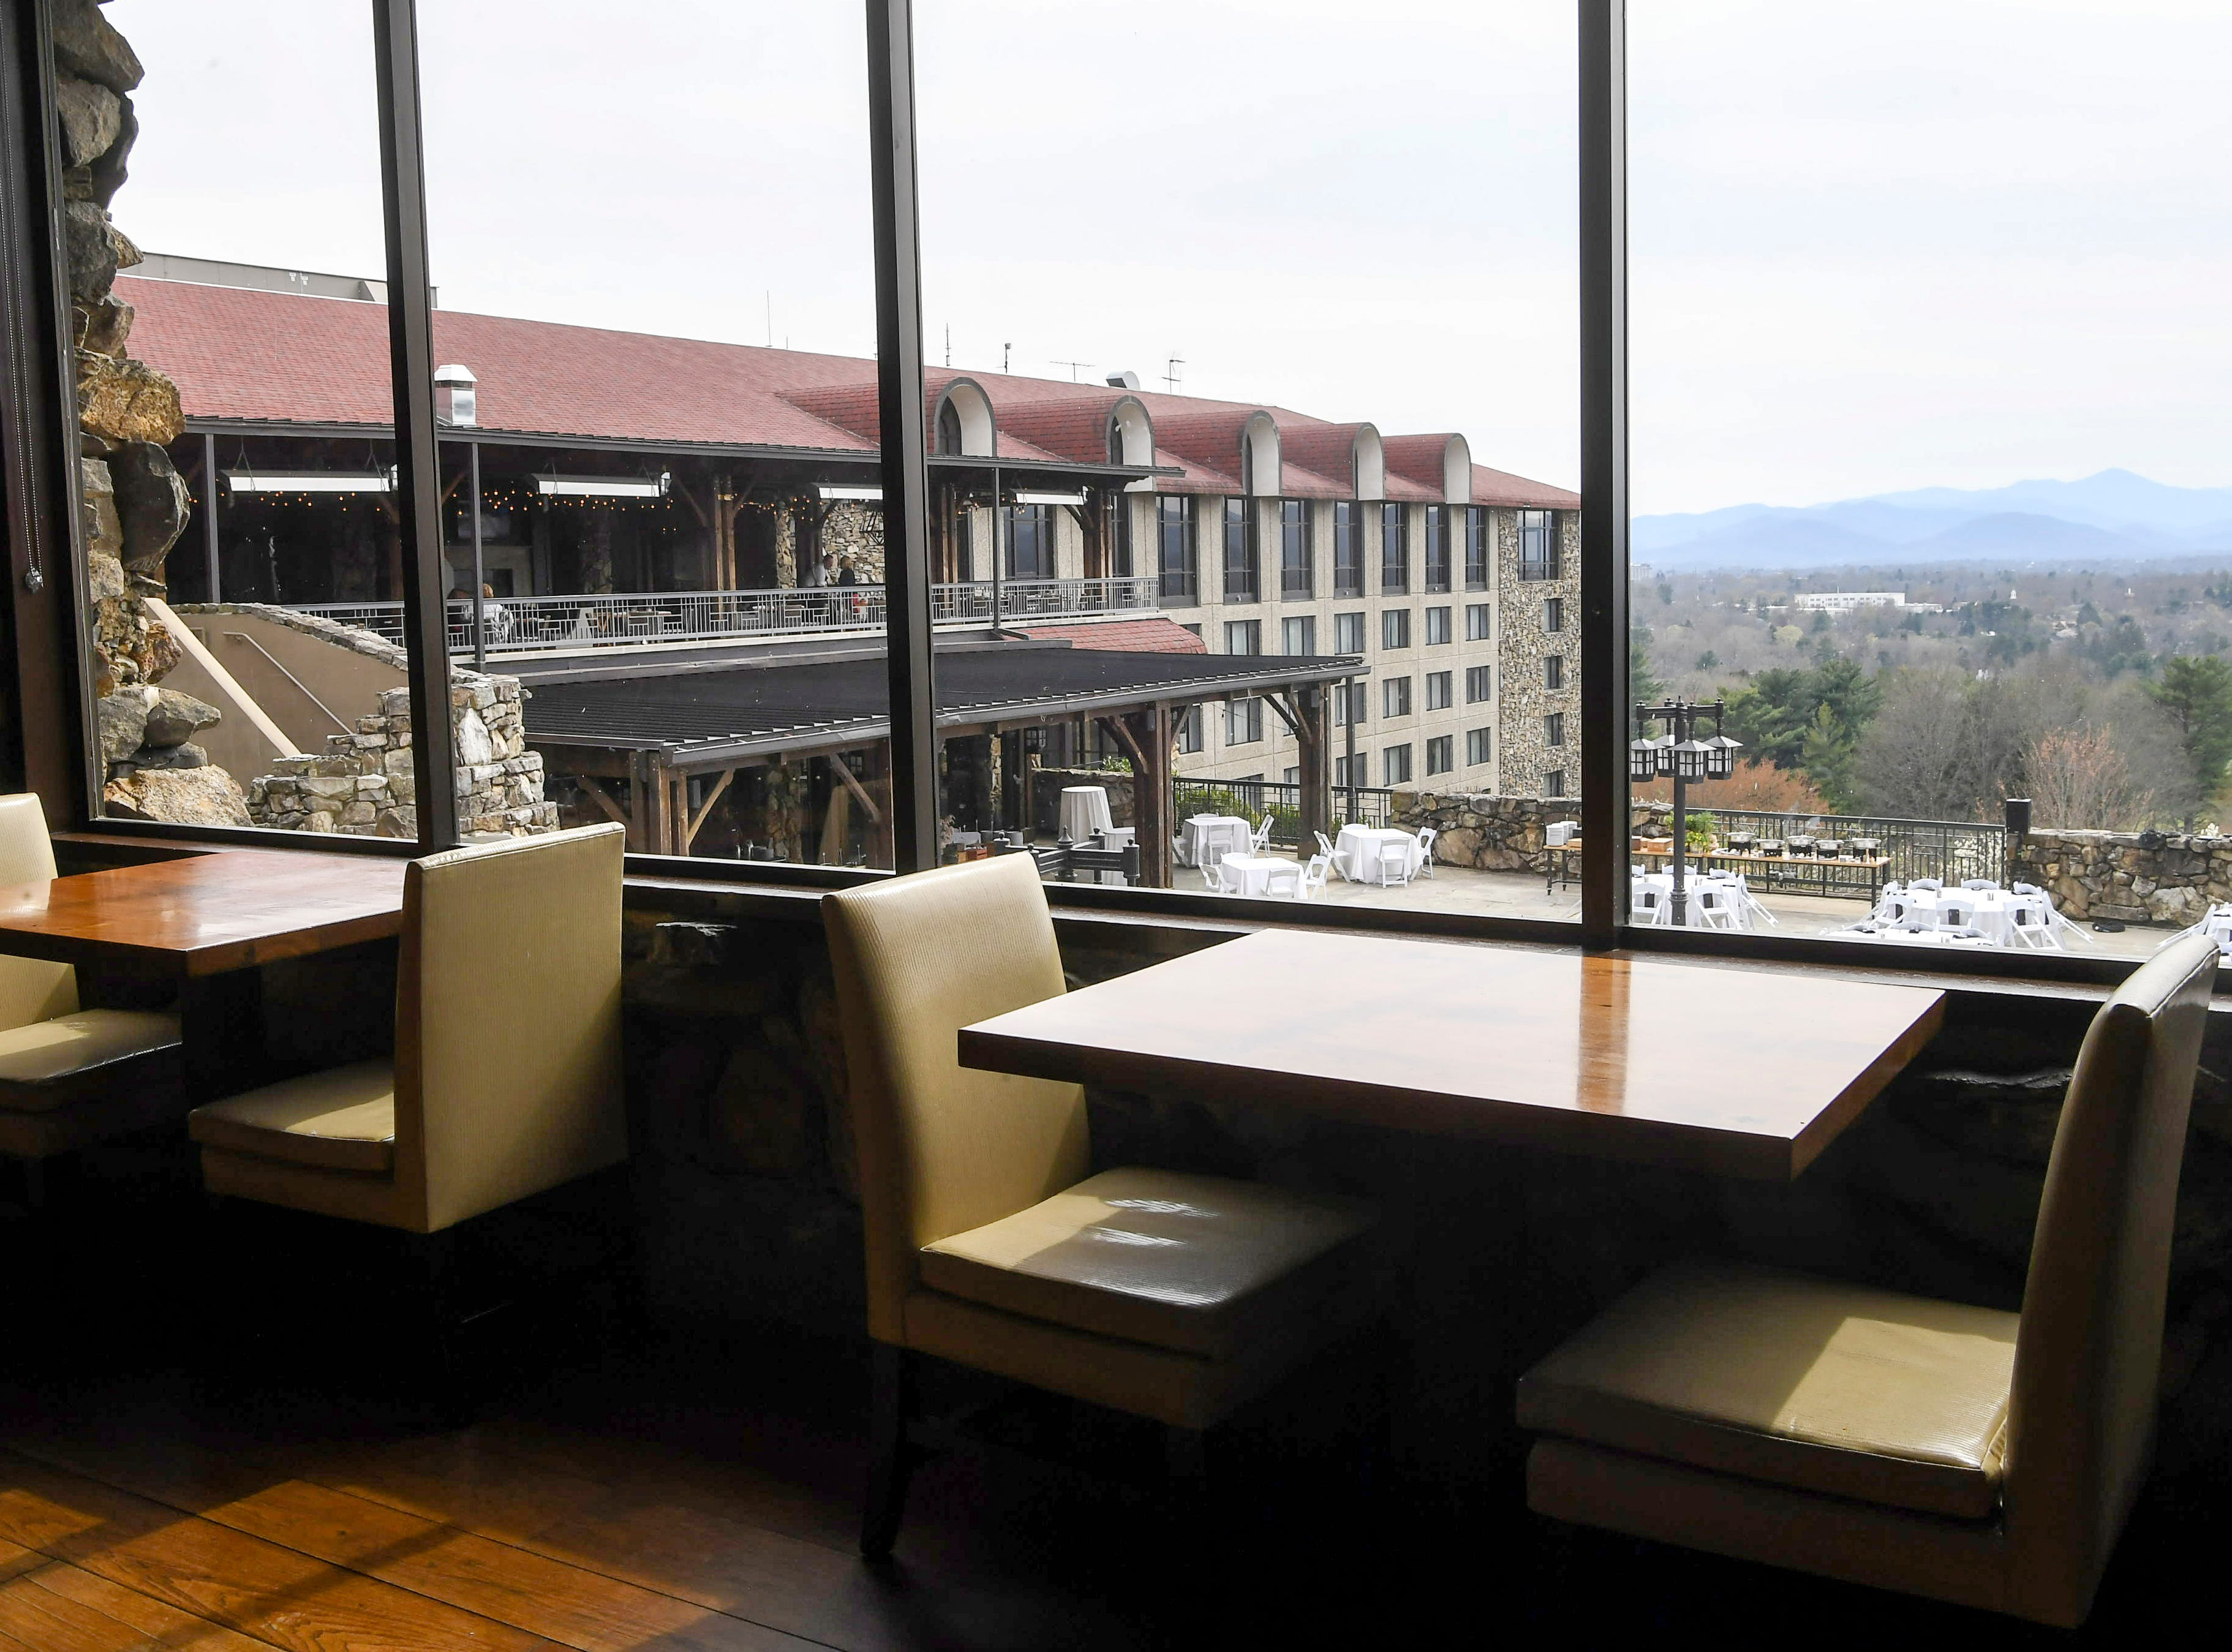 Inside the Grove Park Inn's Edison Craft Ales and Kitchen in Asheville April 4, 2019.